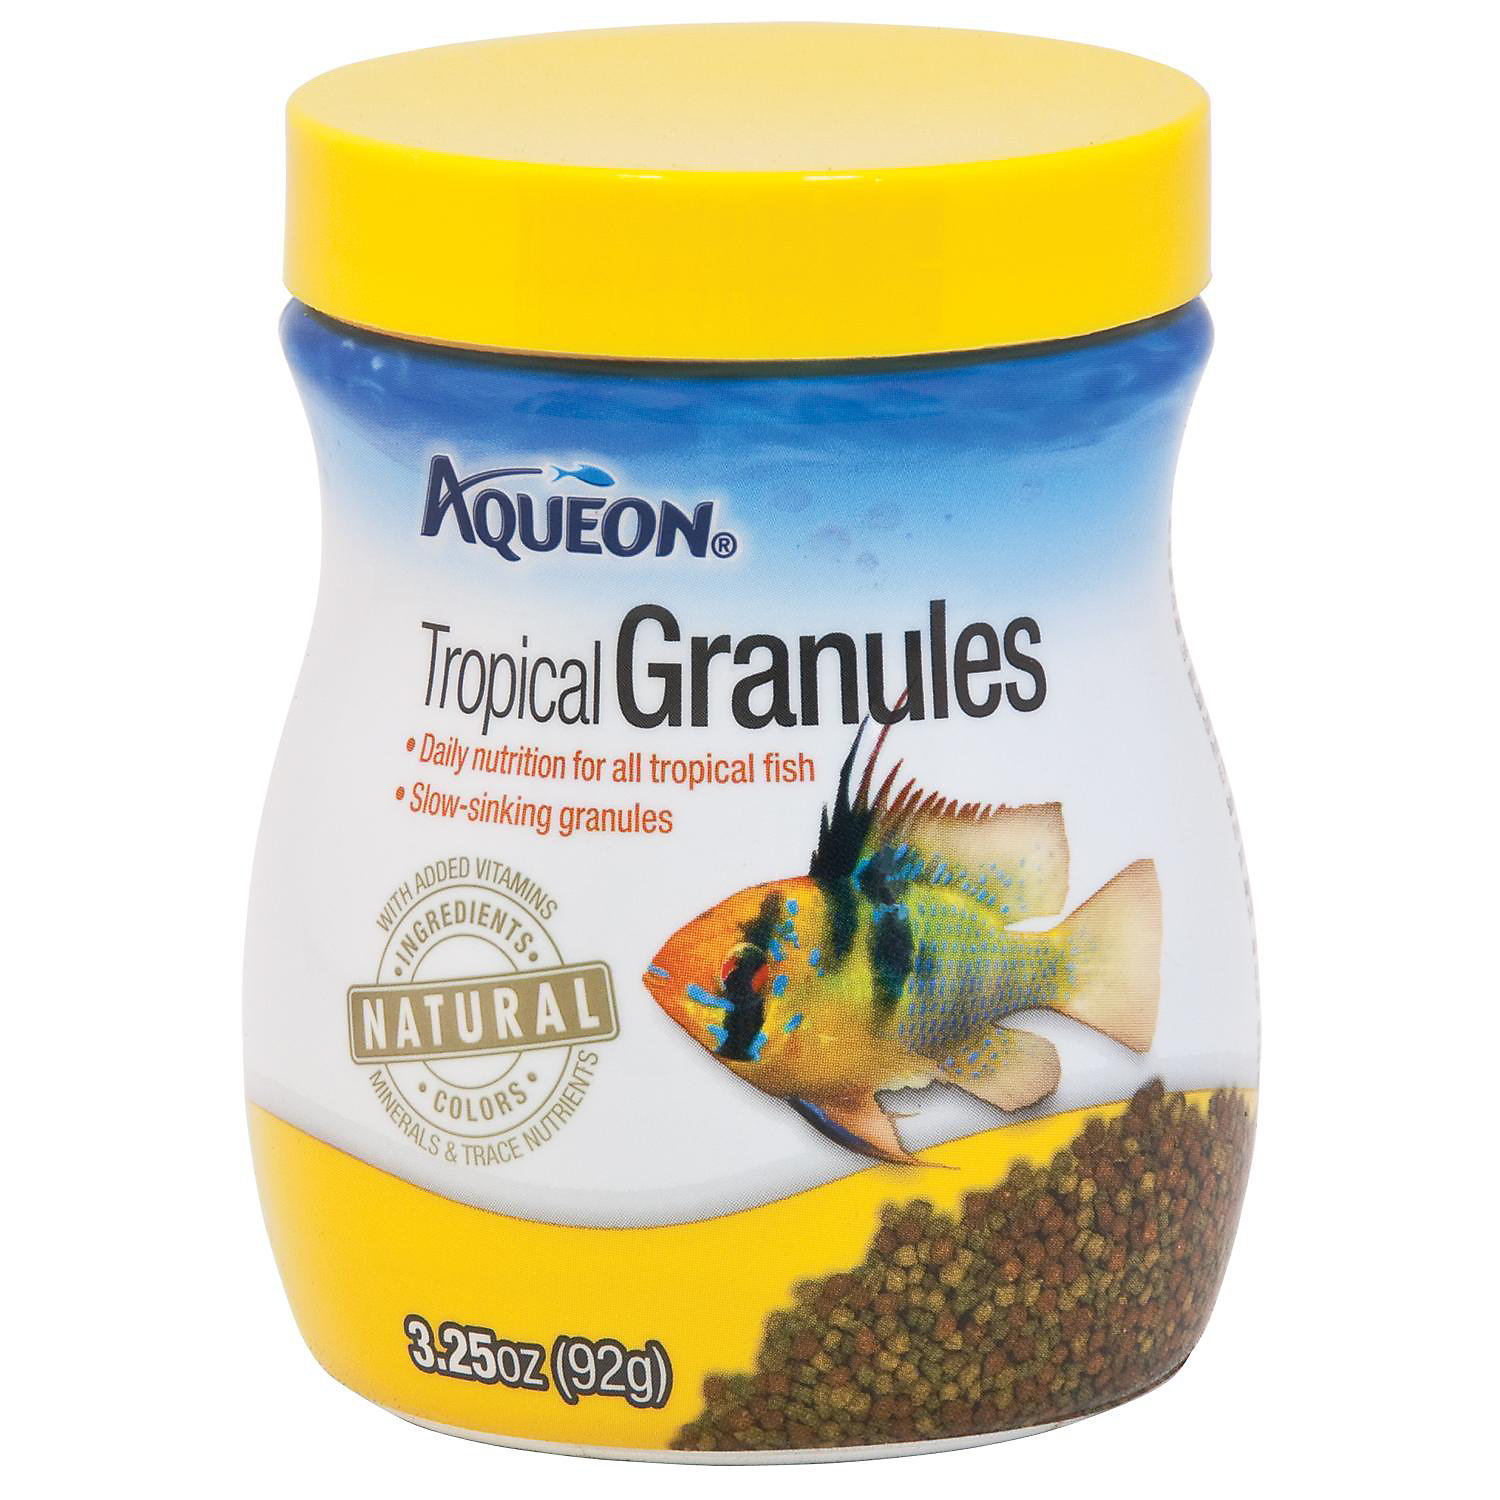 Aqueon Tropical Granules Tropical Fish Food 3.25 Oz.